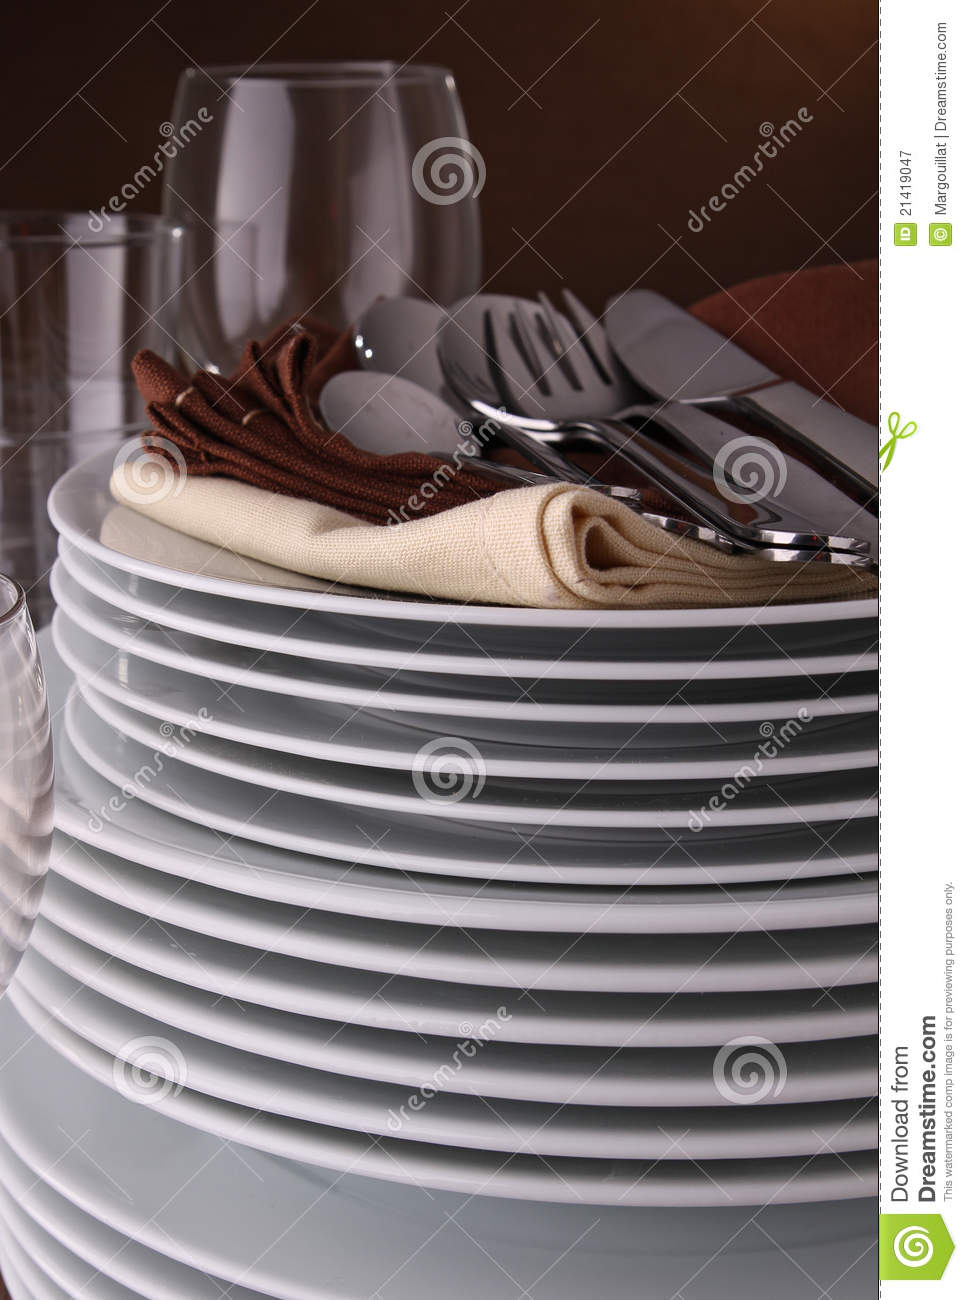 pile of plate and cutlery royalty free stock photography. Black Bedroom Furniture Sets. Home Design Ideas